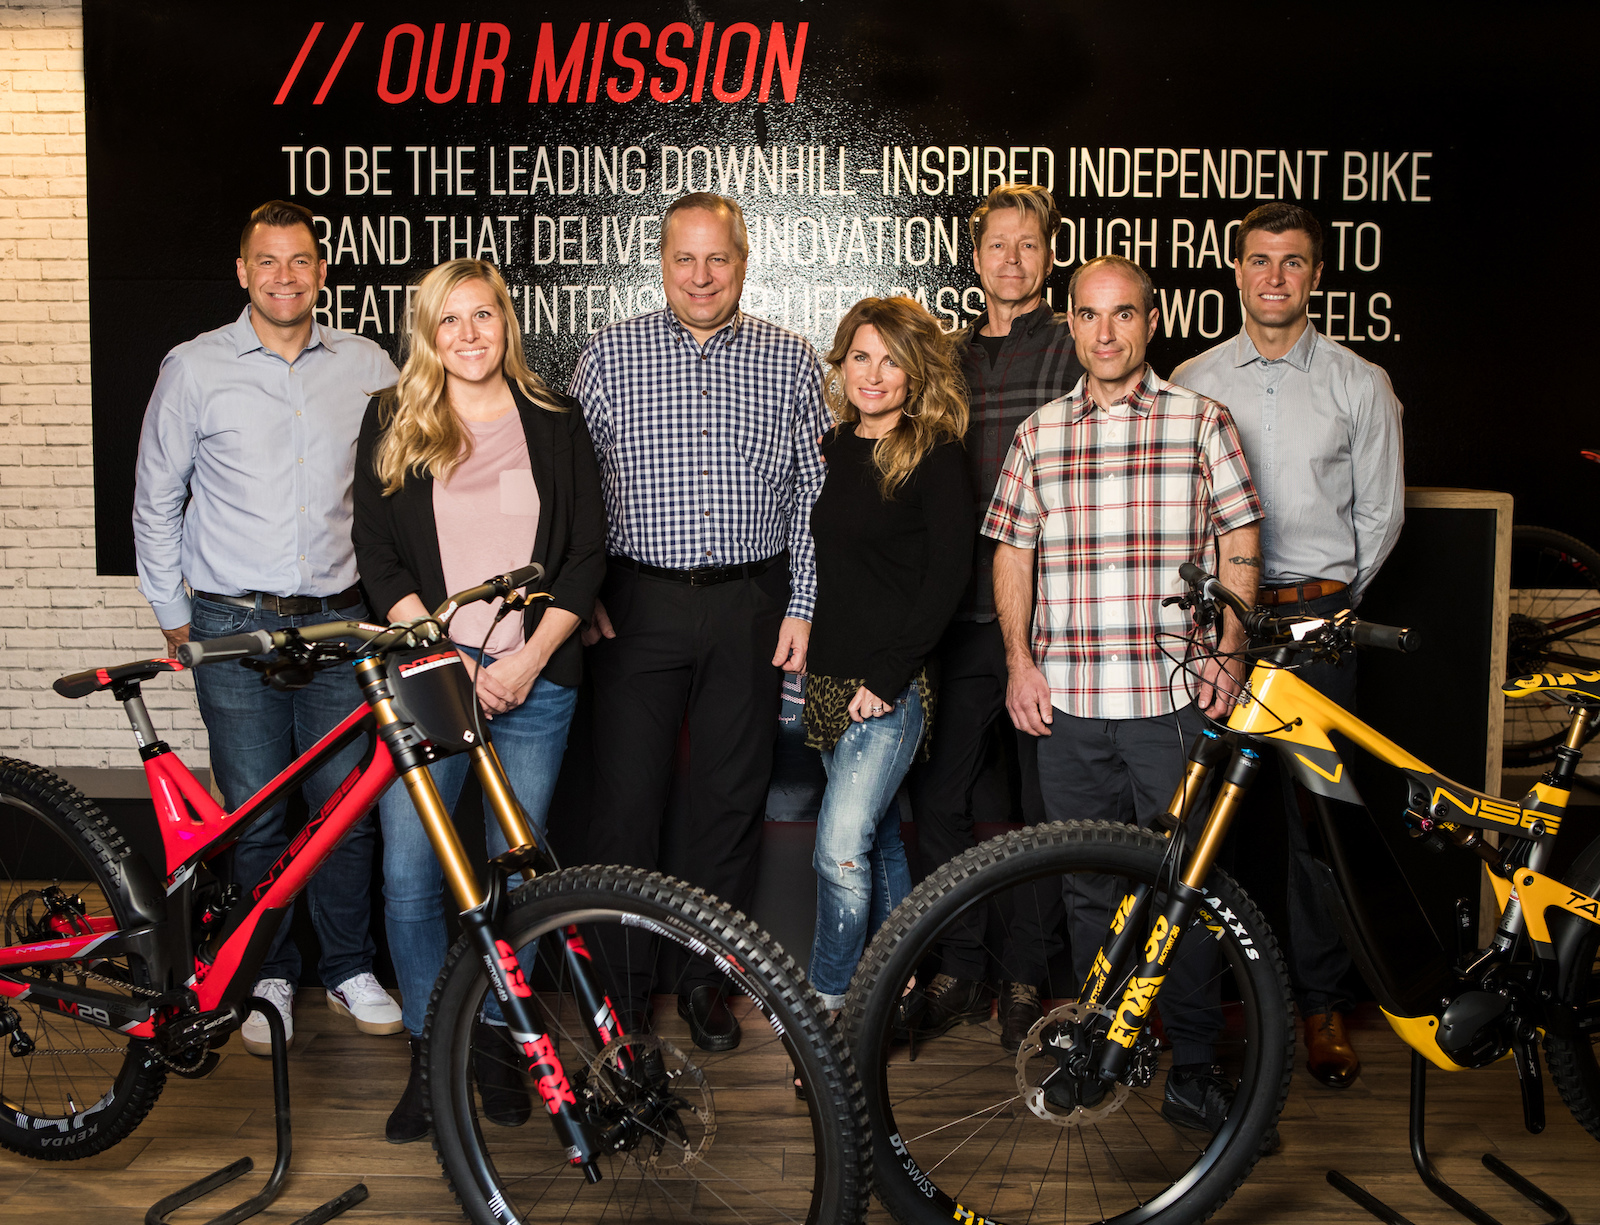 L to R Jon-Erik Burleson Jeb Christy La Curelle Jeff Majkrzak Jennifer Gabrielli Jeff Steber Chad Peterson Ryan Dungey